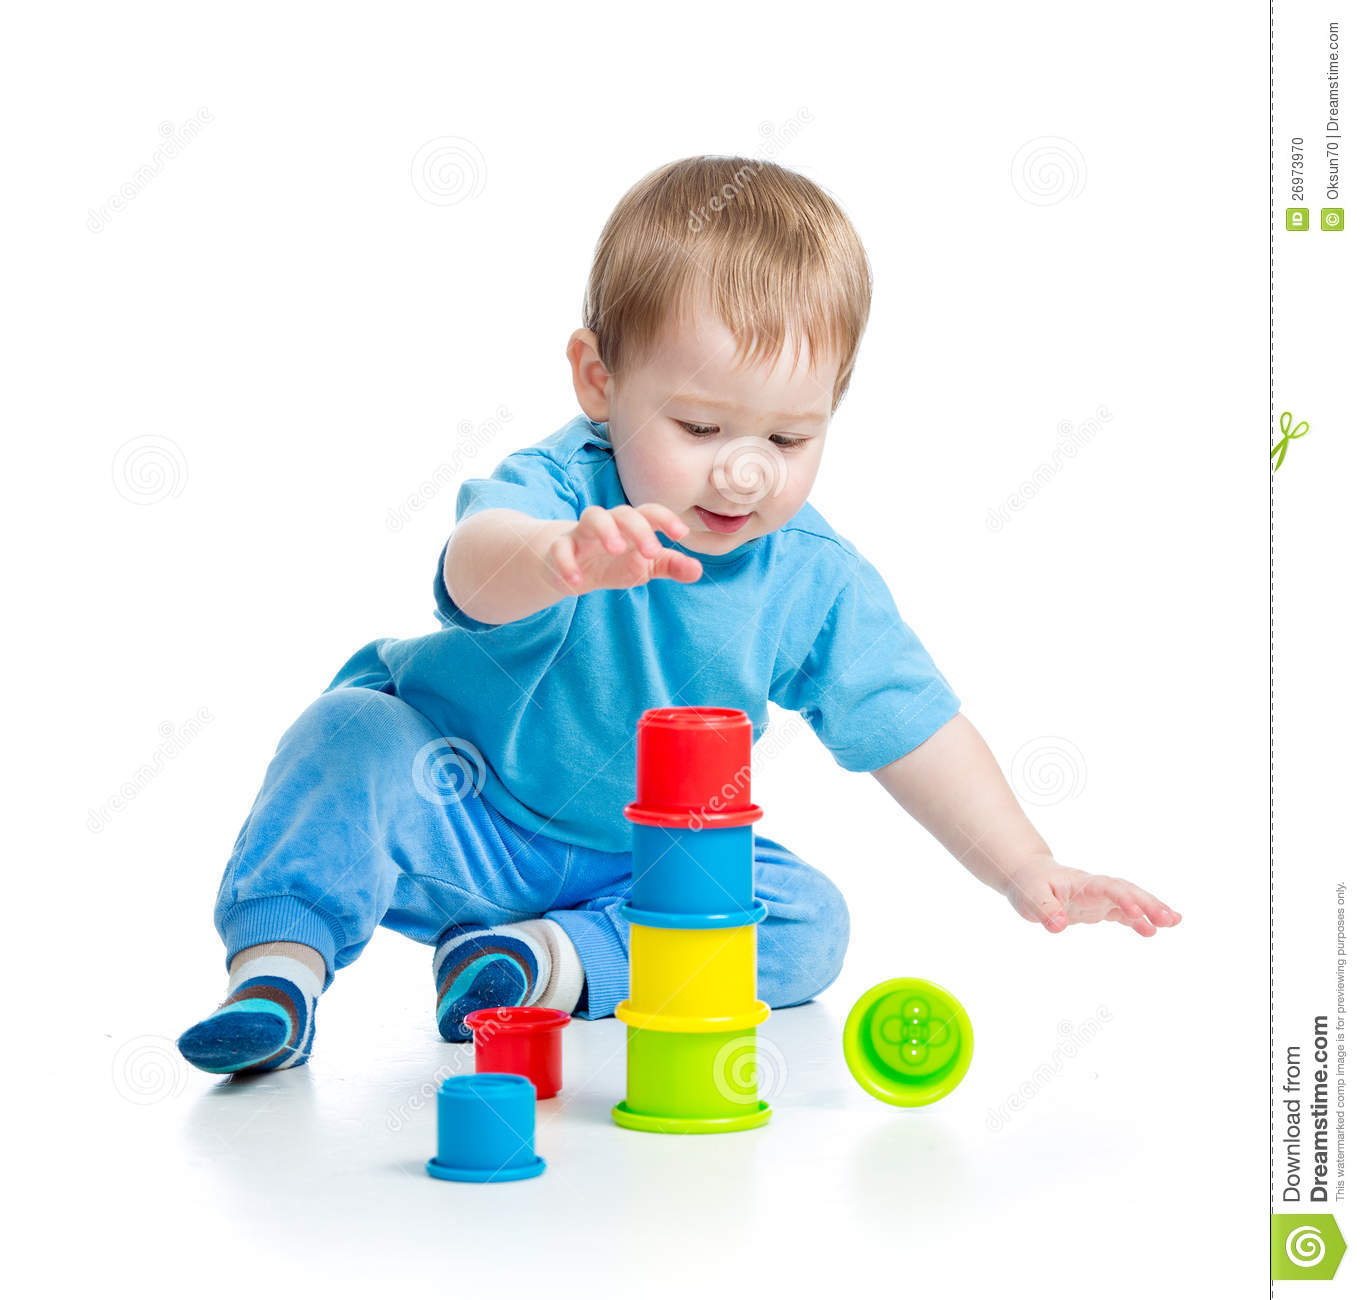 Baby Playing With Colourful Toys On Floor Stock Photo  Image